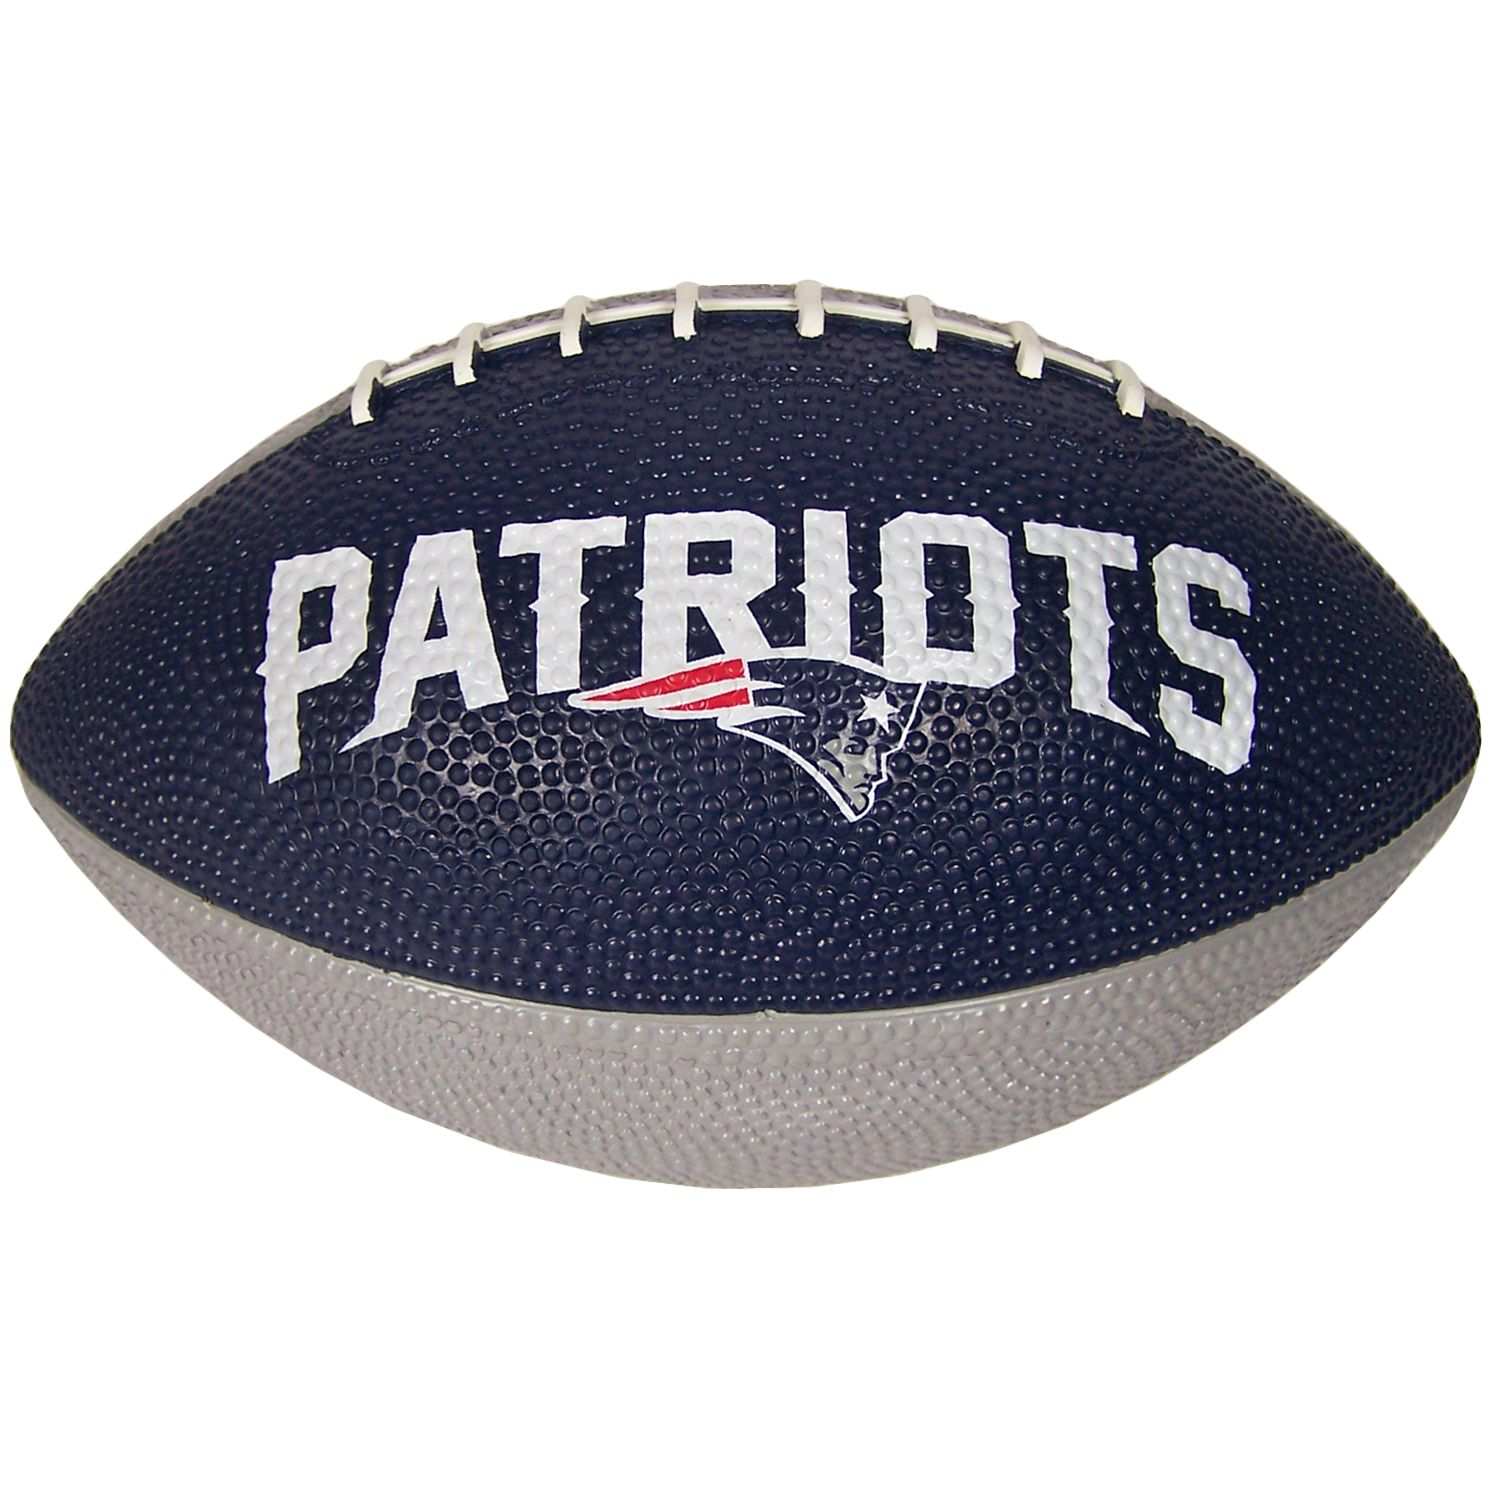 New England Patriots Official NFL Youth Football Hail Mary by Rawlings 717189